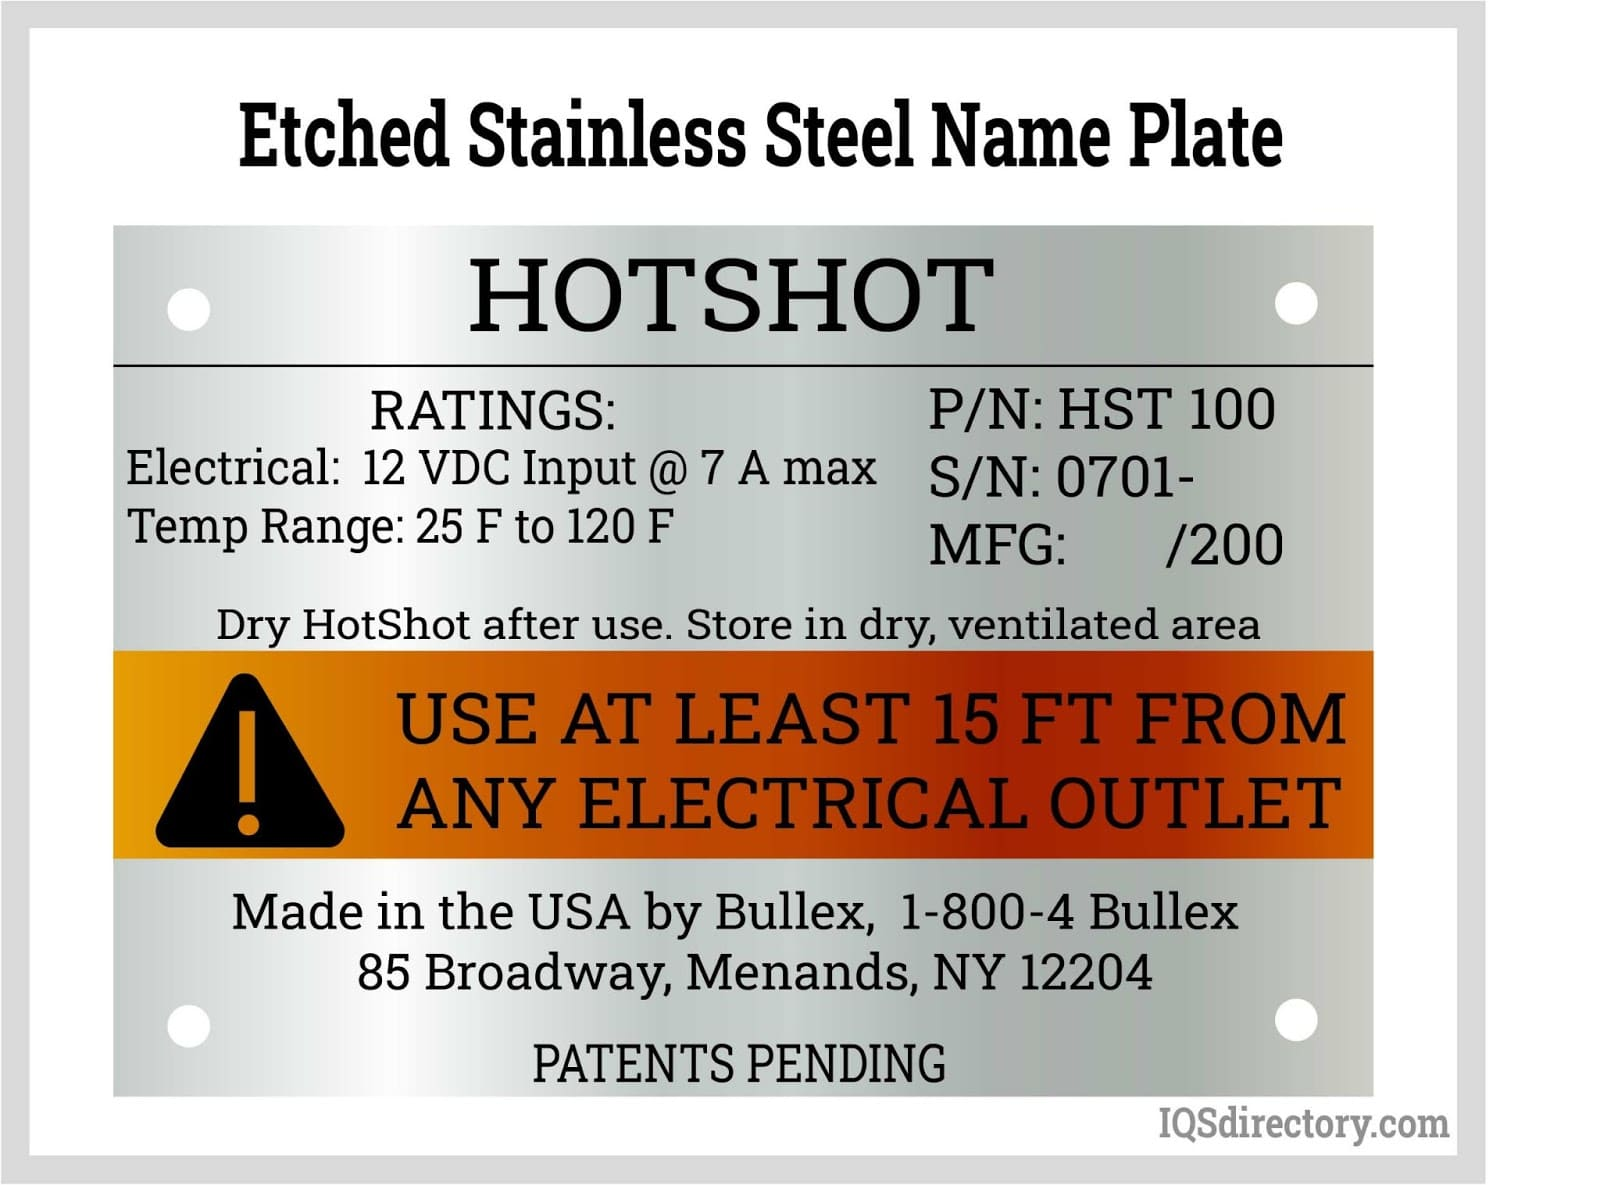 Etched Stainless Steel Name Plate